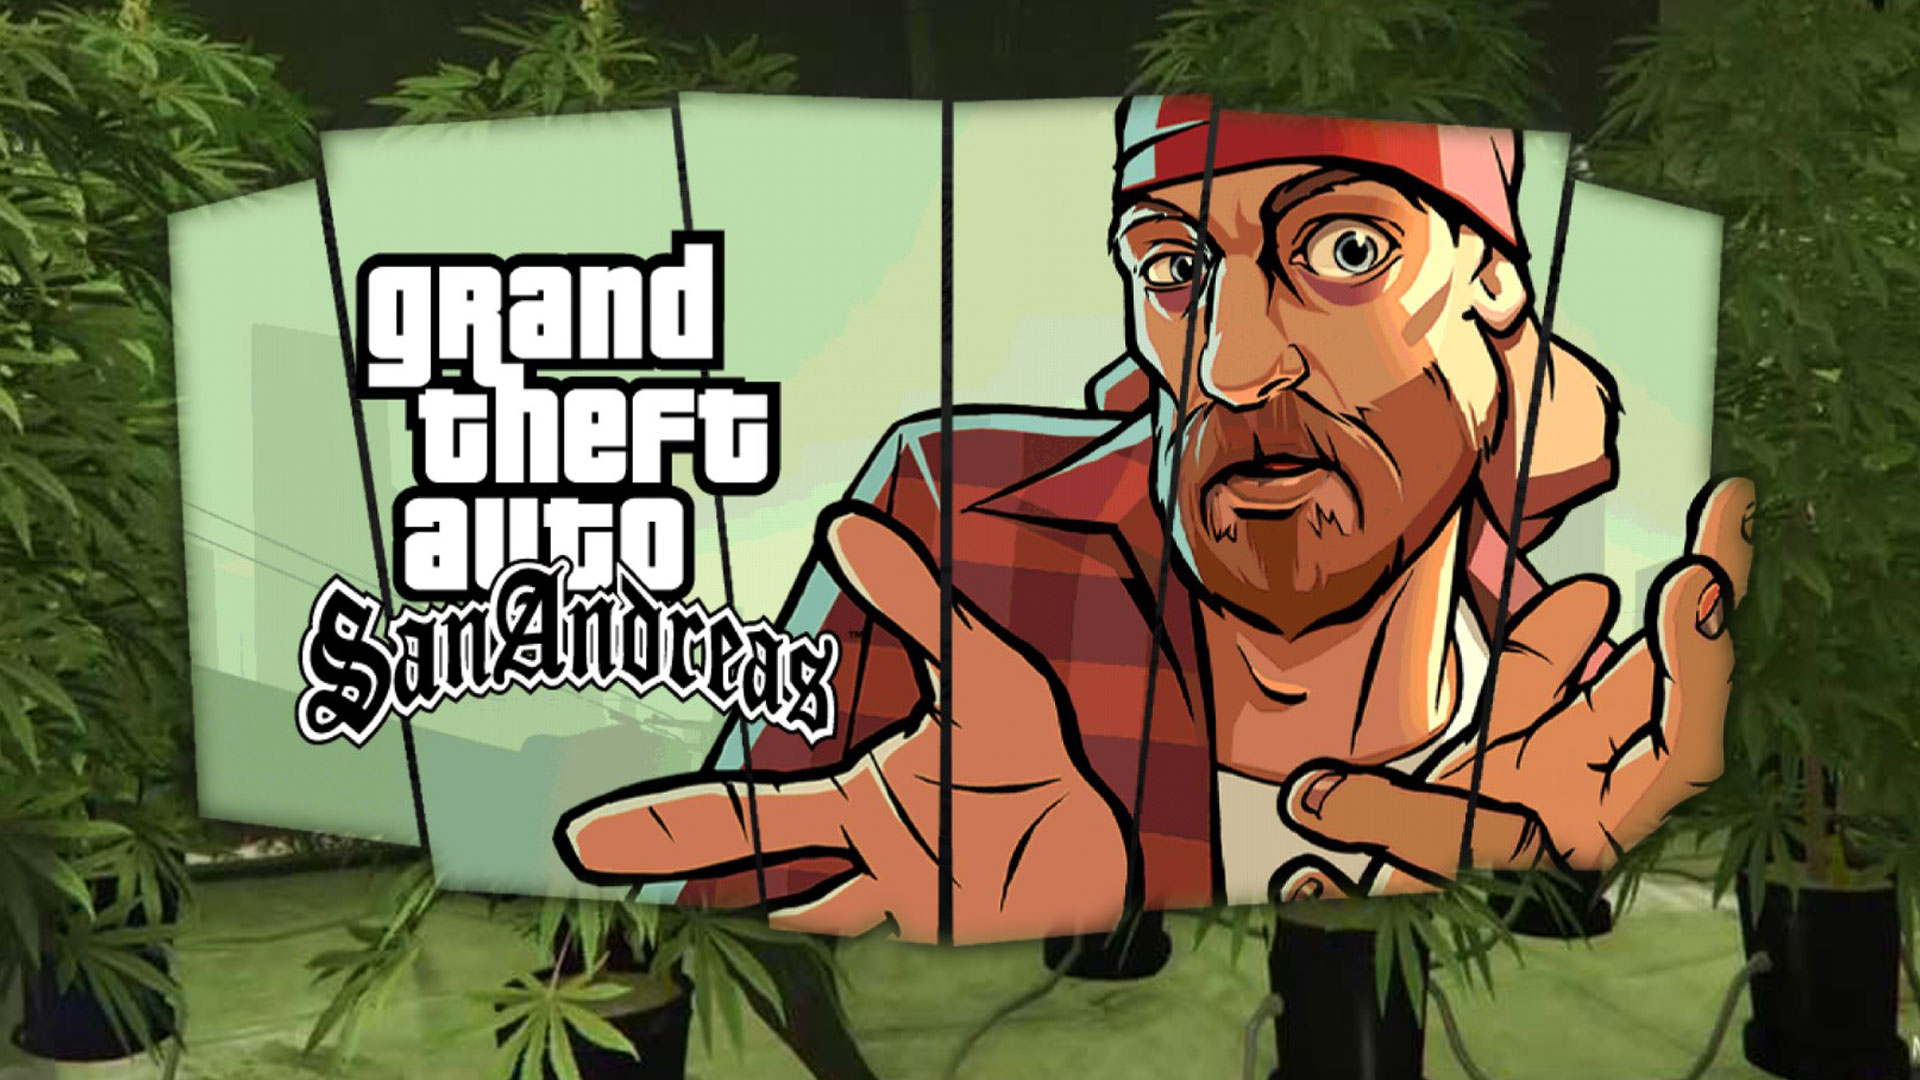 images of grand theft auto san andreas